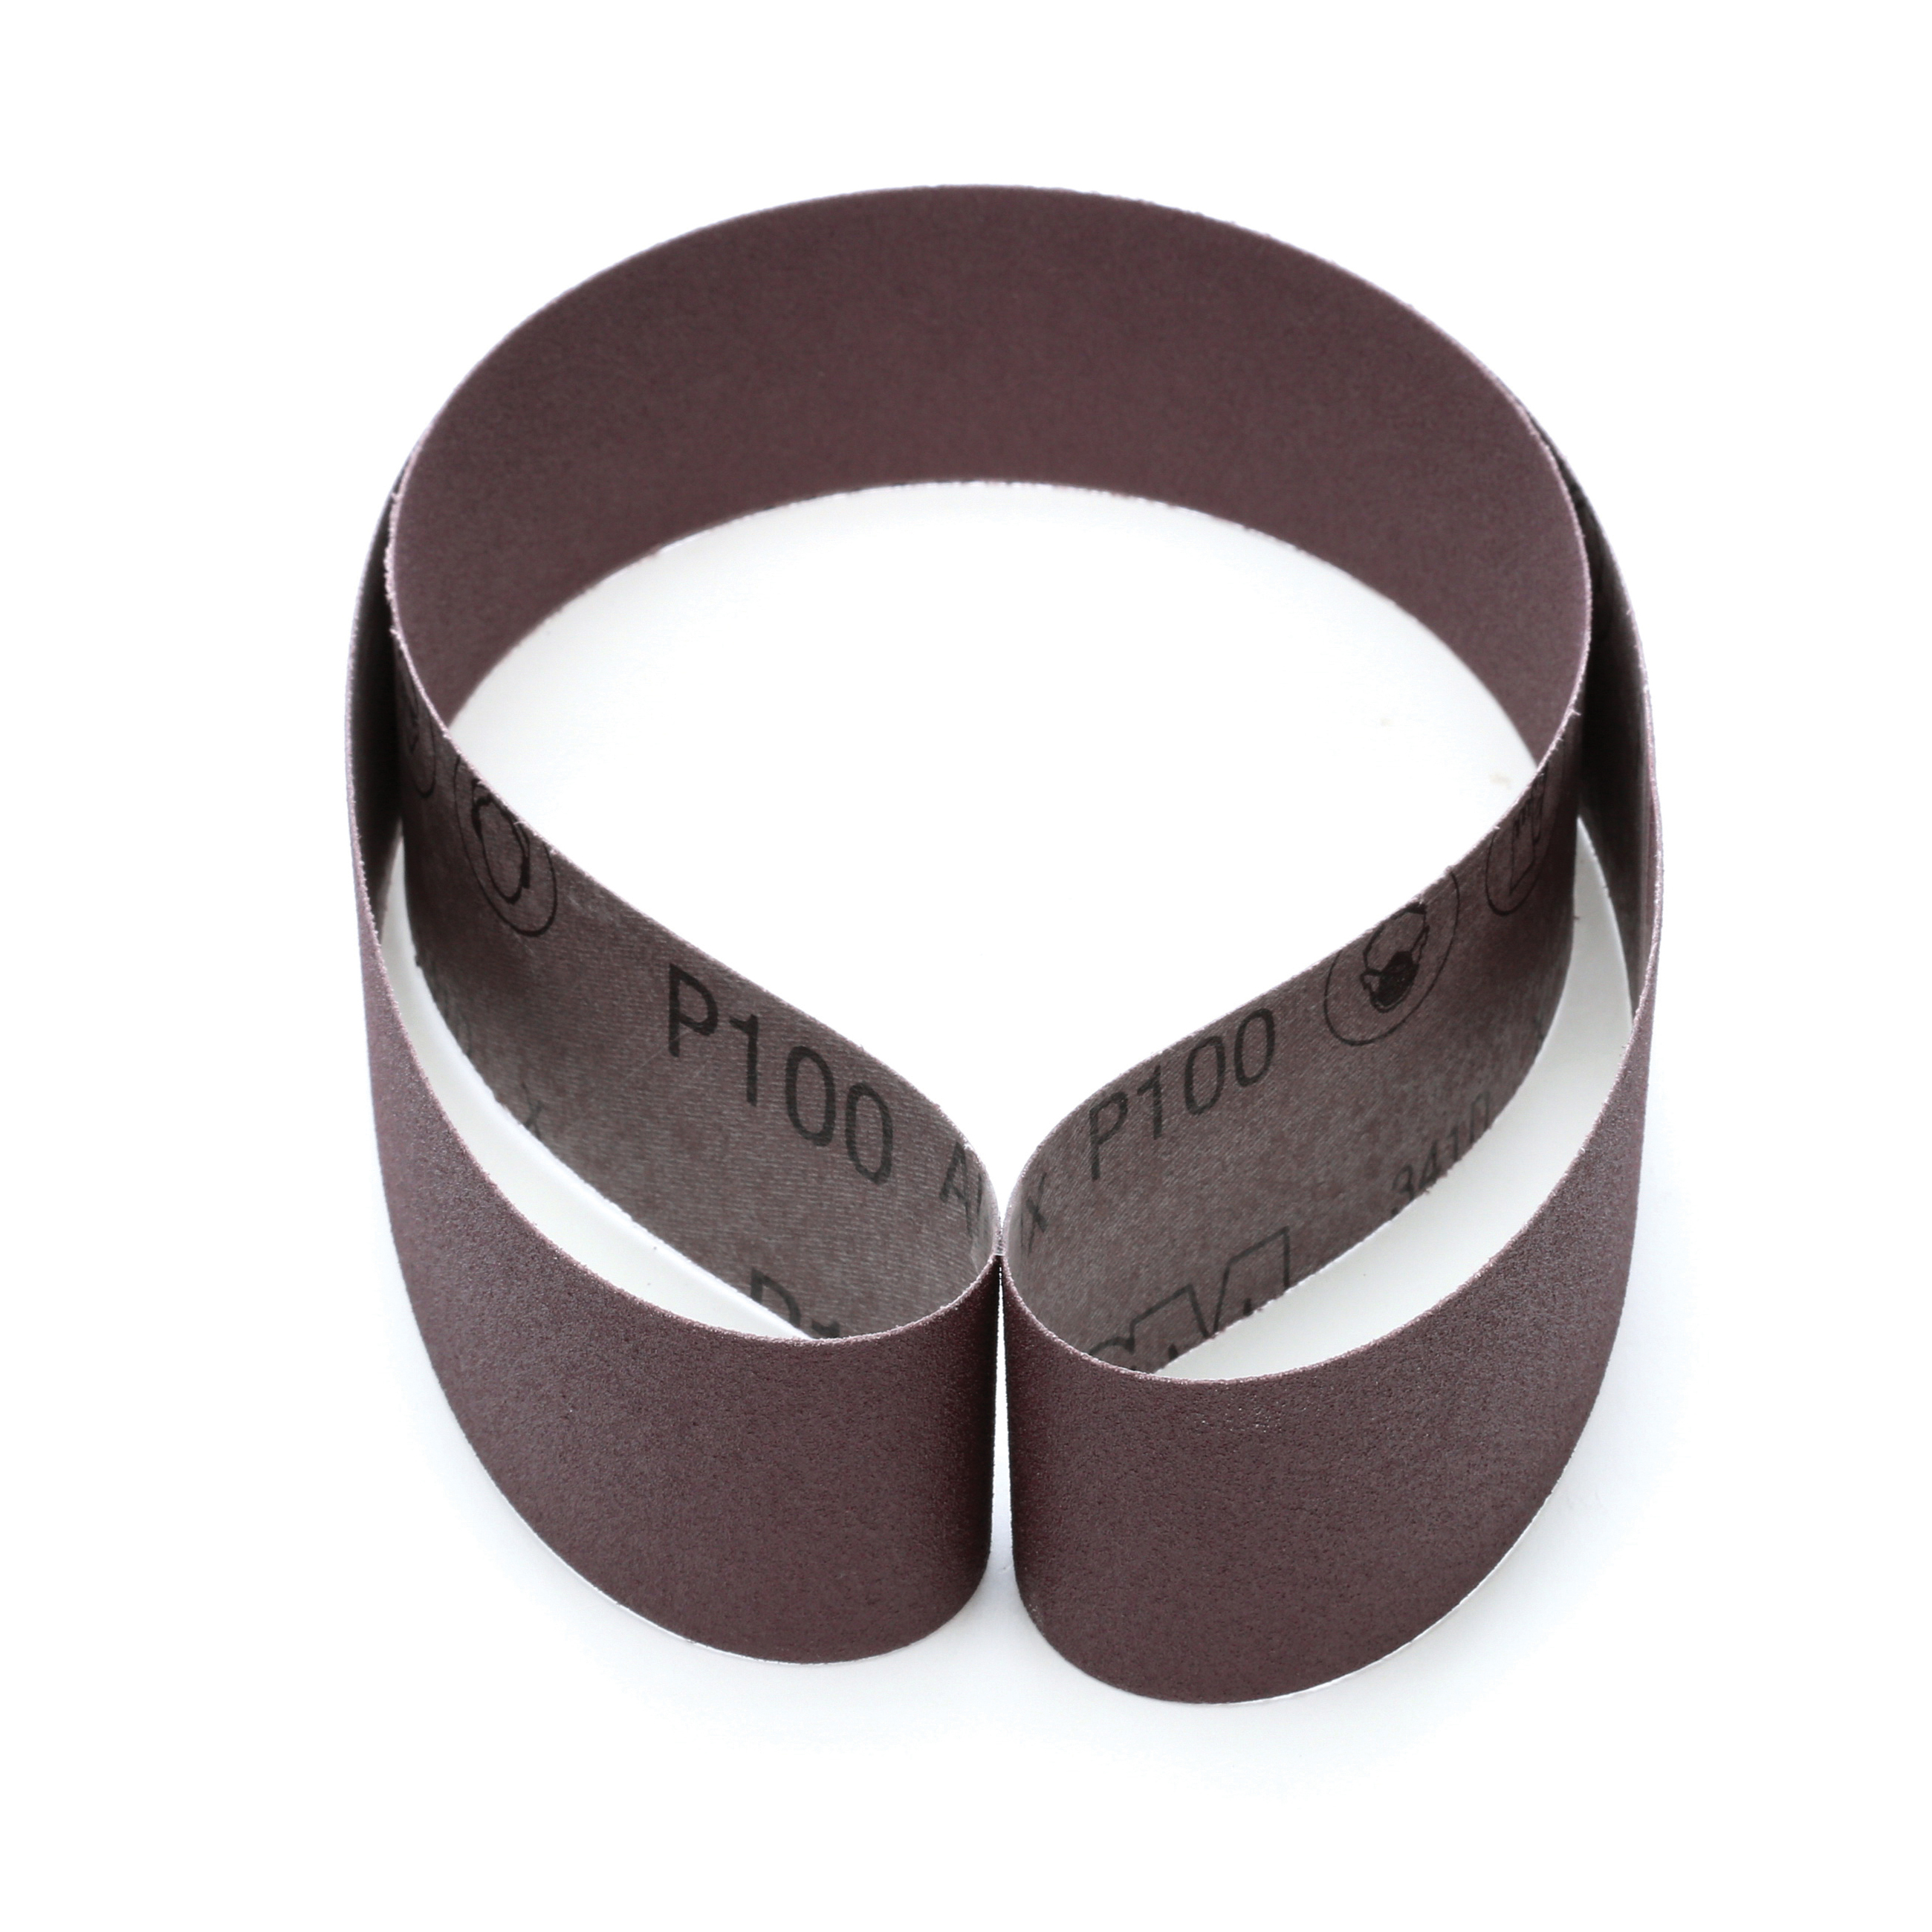 3M™ 051144-26561 341D Narrow Abrasive Belt, 2 in W x 48 in L, P100 Grit, Fine Grade, Aluminum Oxide Abrasive, Cloth Backing